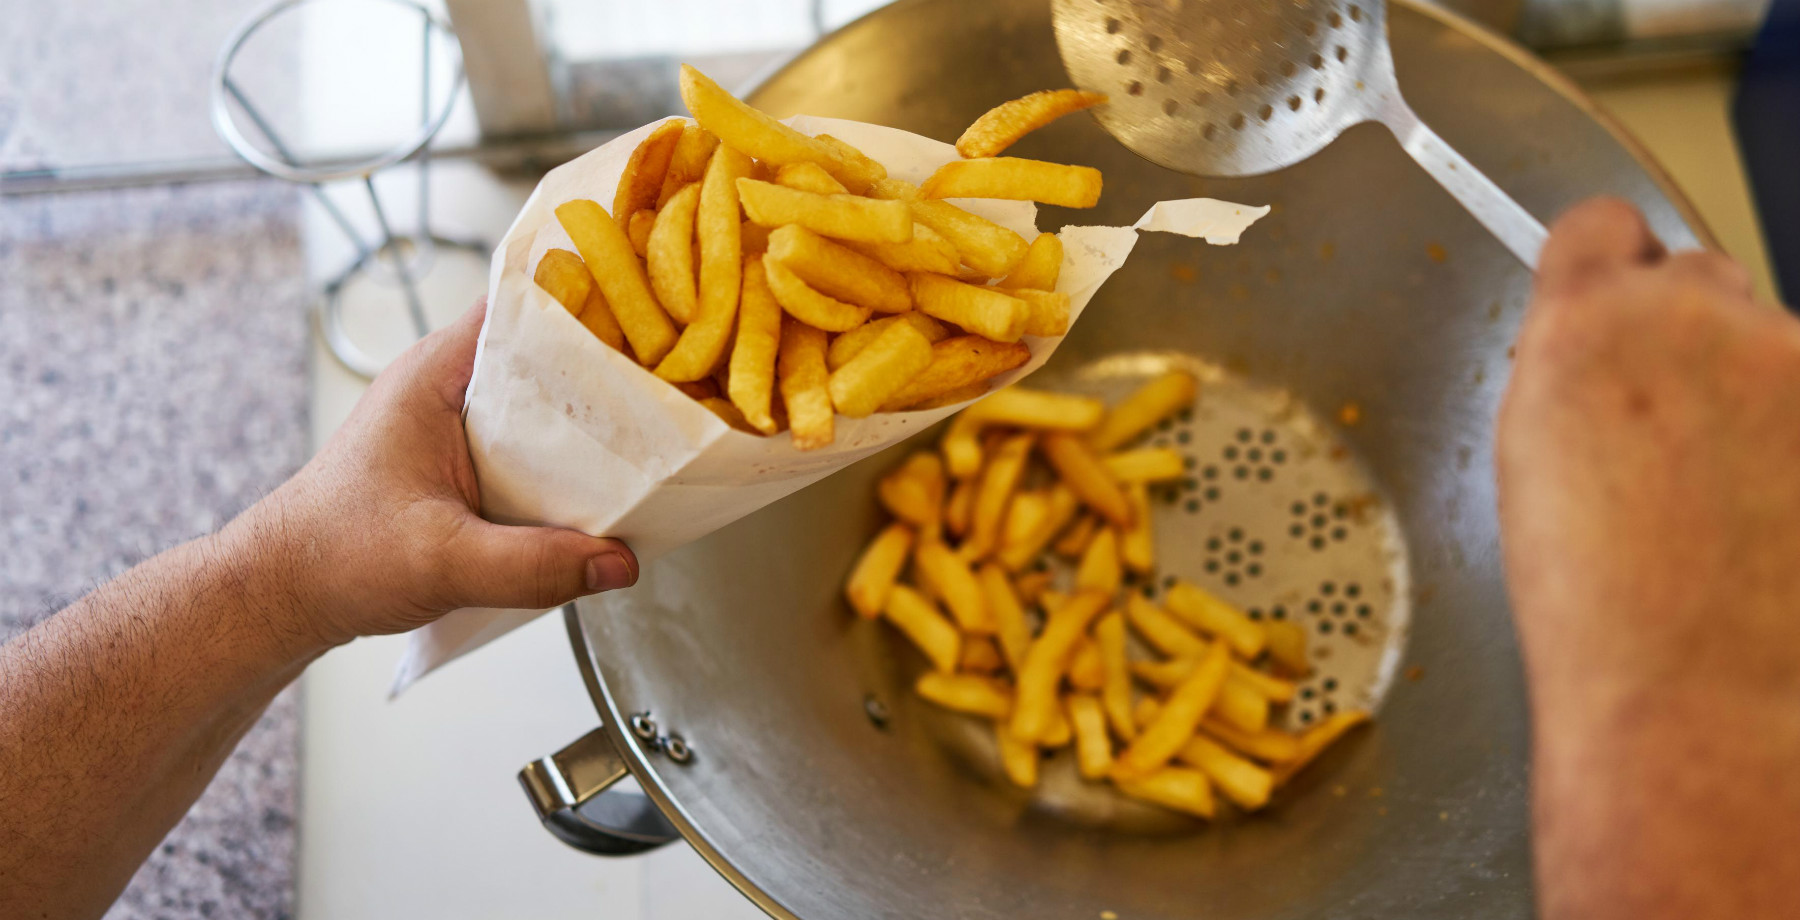 Belgian fries